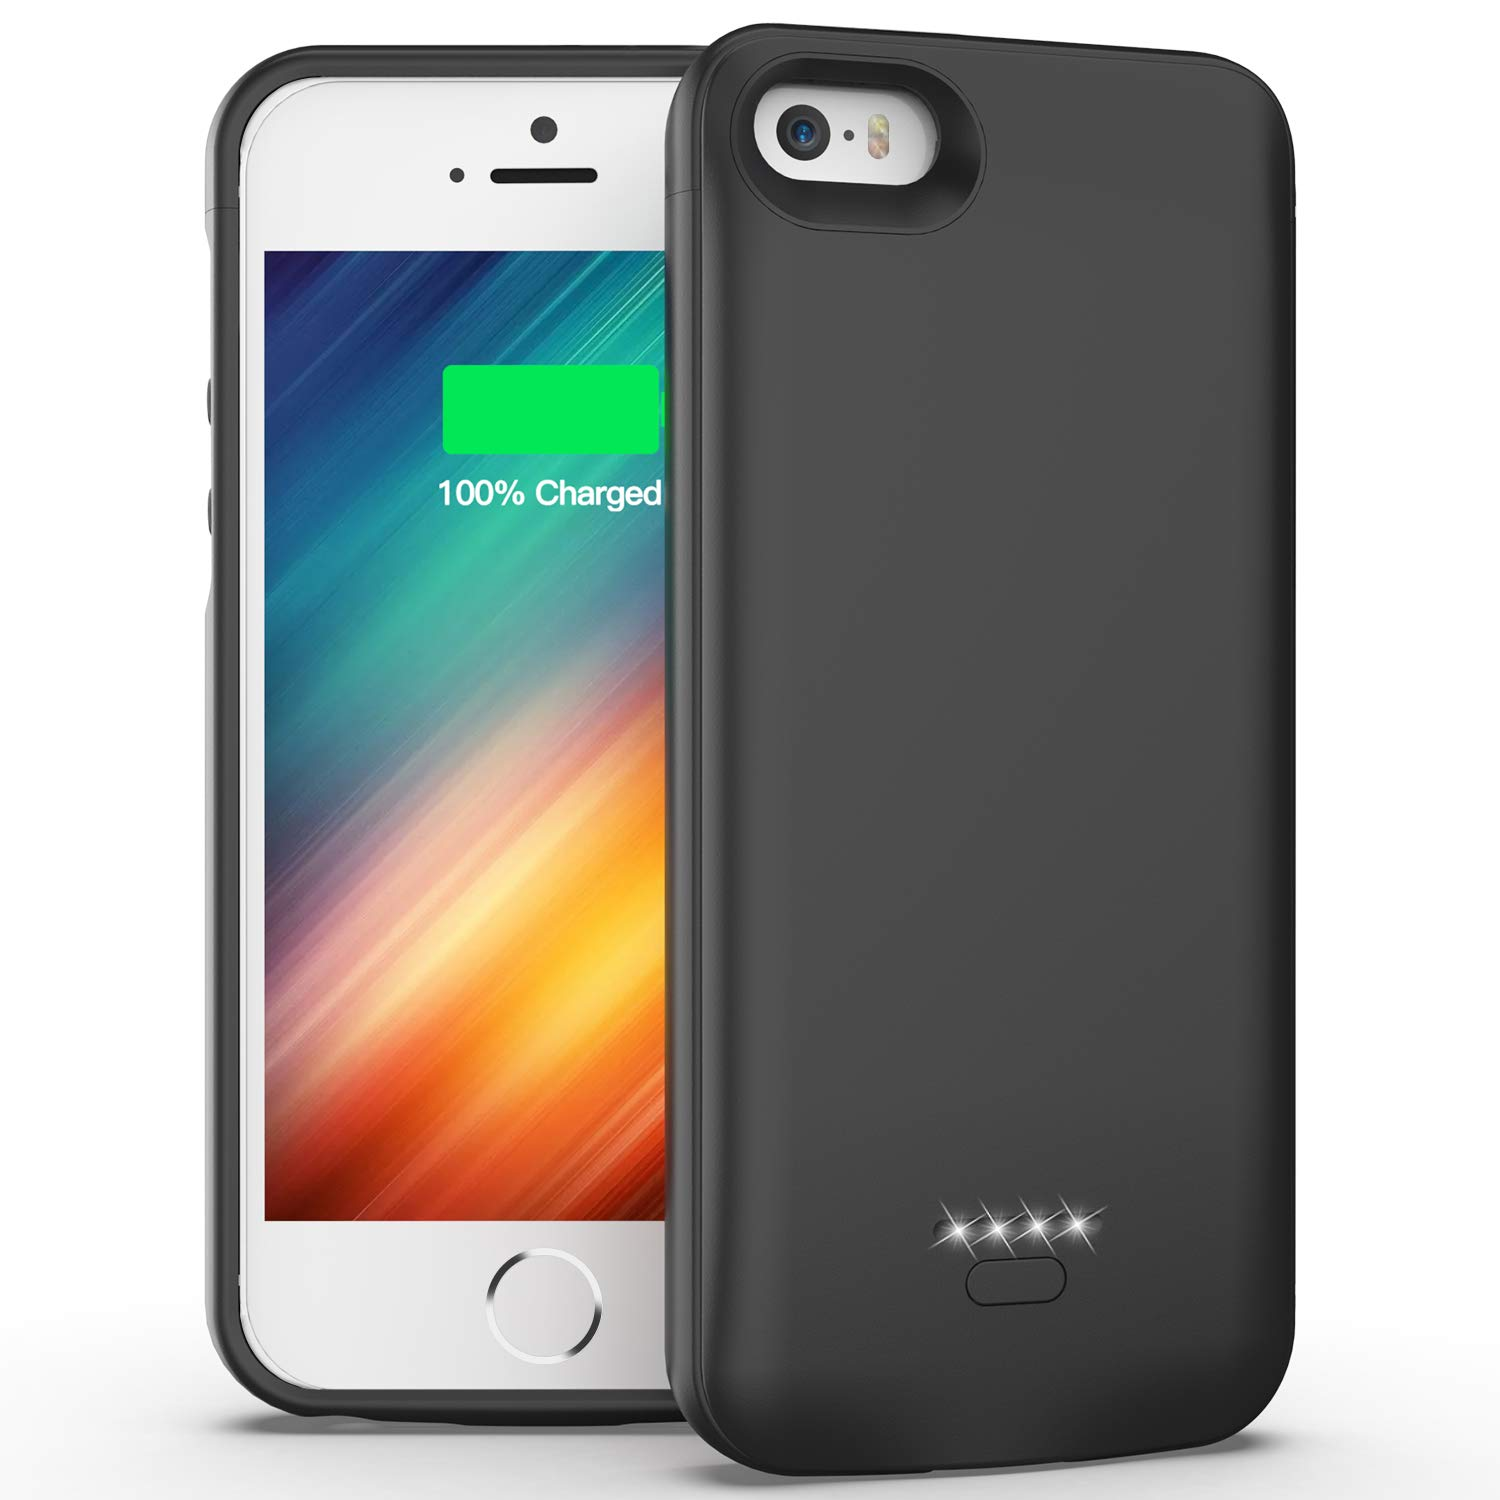 iPhone 5 5S SE Battery Case, 4000mAh Portable Protective Charging Case Extended Rechargeable Charger Case for iPhone 5/ 5S/ SE (4.0 inch) by Swaller